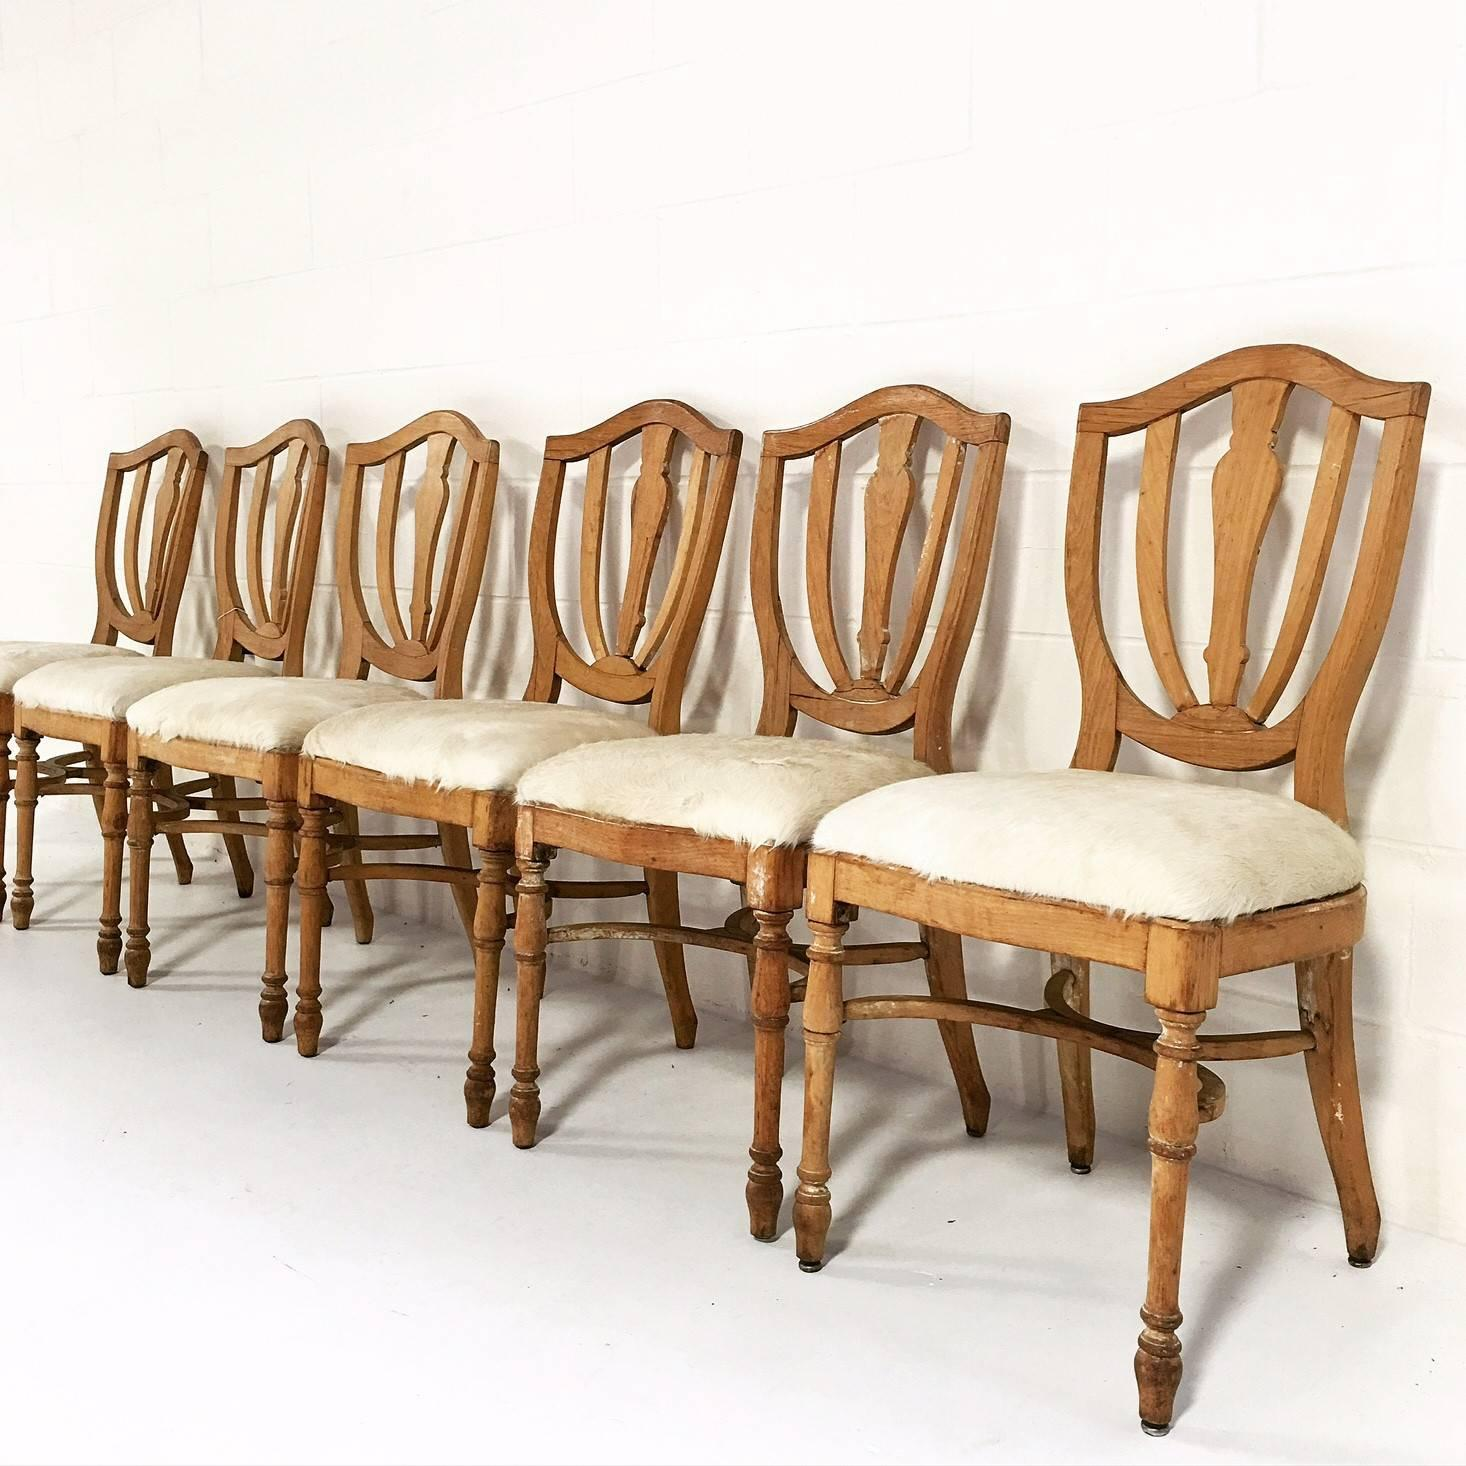 cowhide chairs nz job lot folding vintage maple dining in brazilian ivory